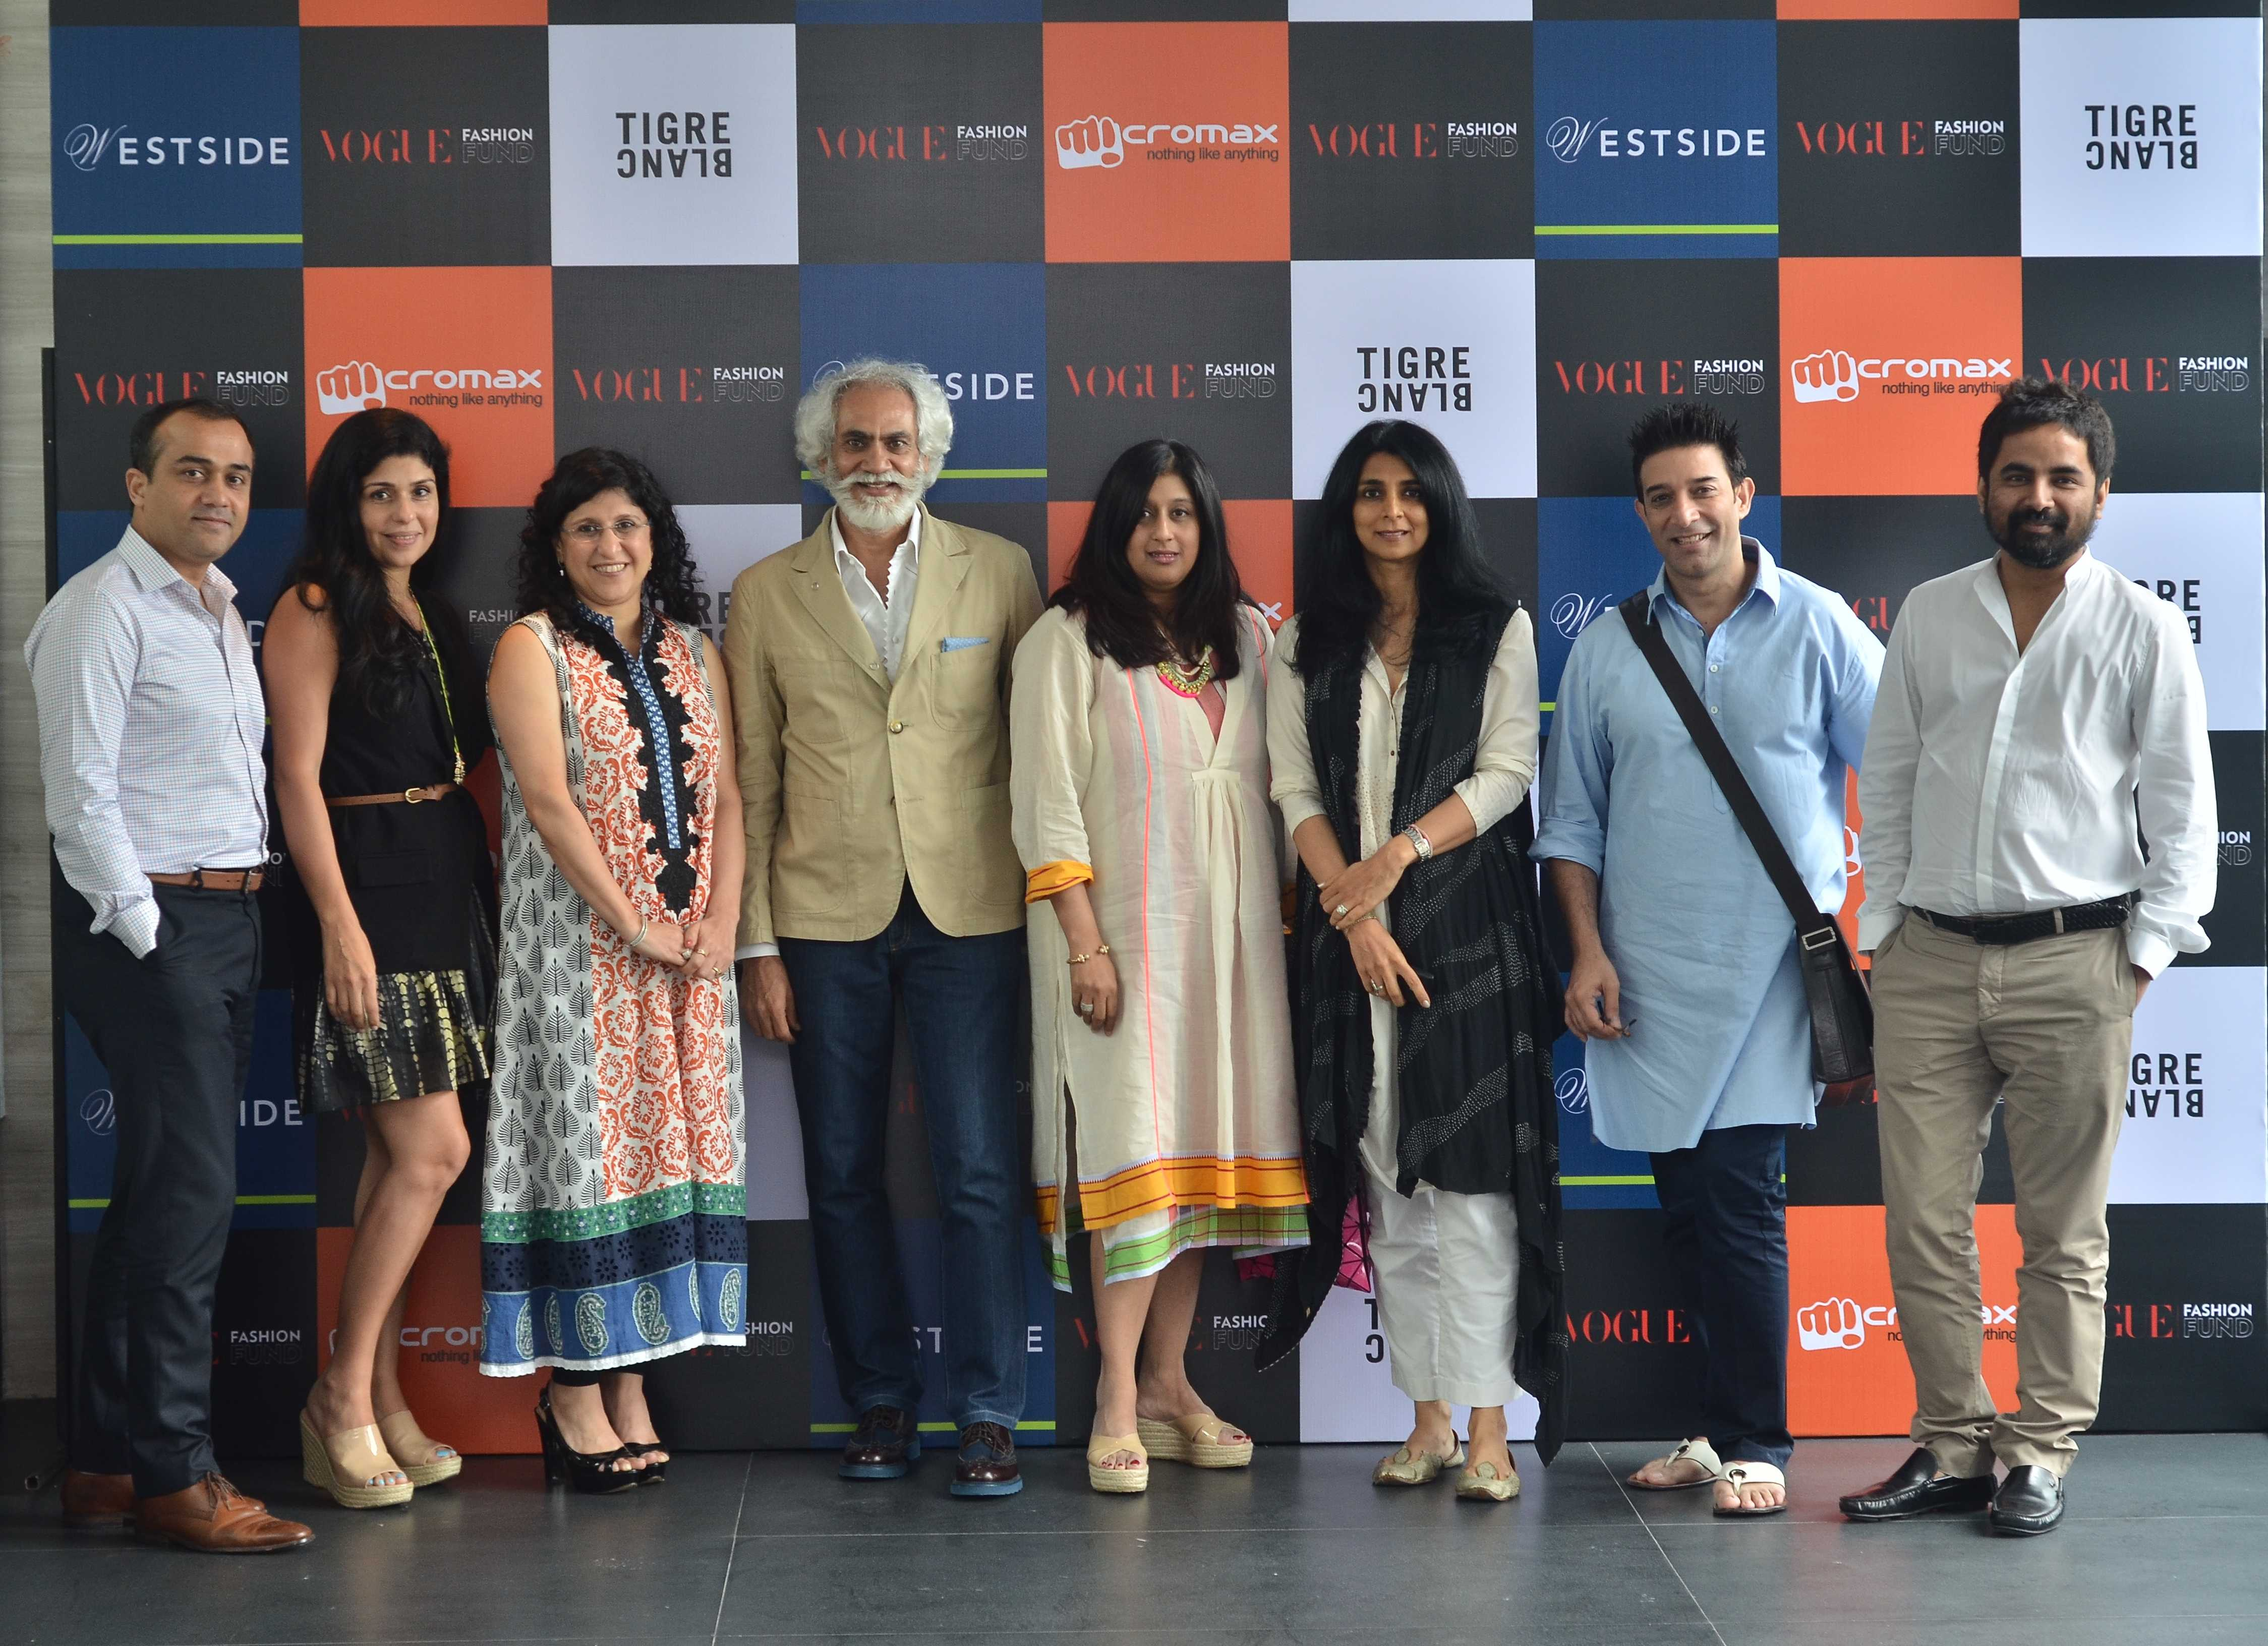 Entries for the Vogue Fashion Fund were invited on pre-defined eligibility criteria. The jury includes FDCI's Sunil Sethi, Gaurav Mahajan-COO of Westside, renowned fashion designers Sabyasachi Mukherjee and Suneet Varma as well as retail experts Alka Ni